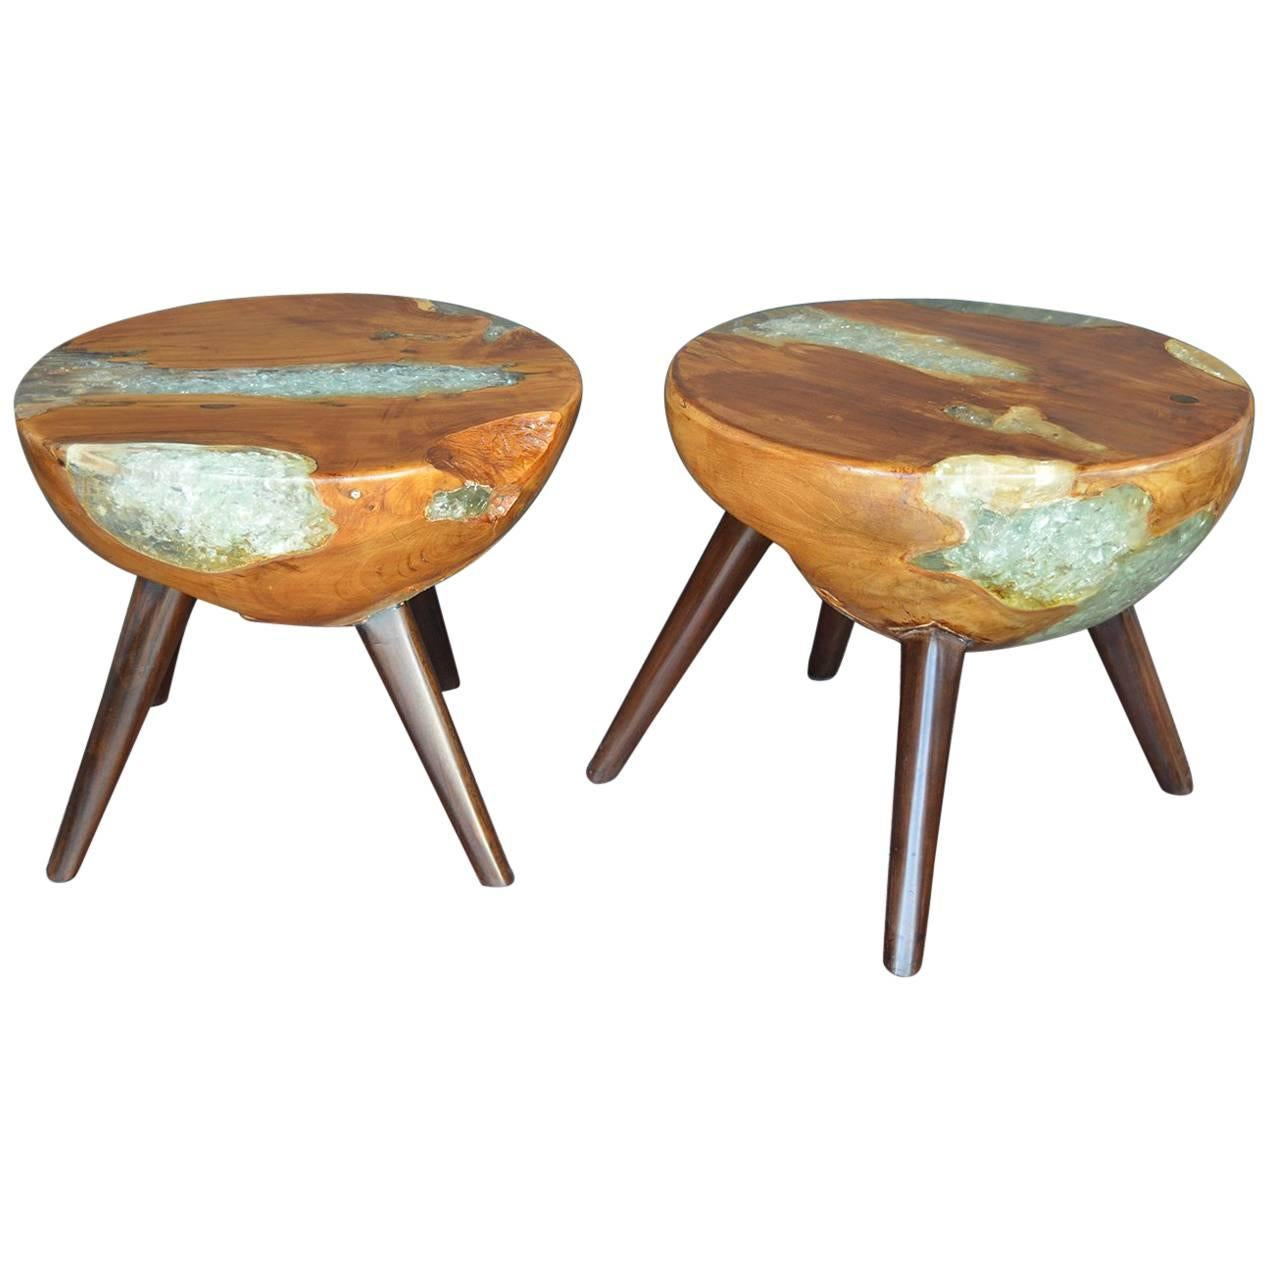 Pair of Wood and Resin Side Tables